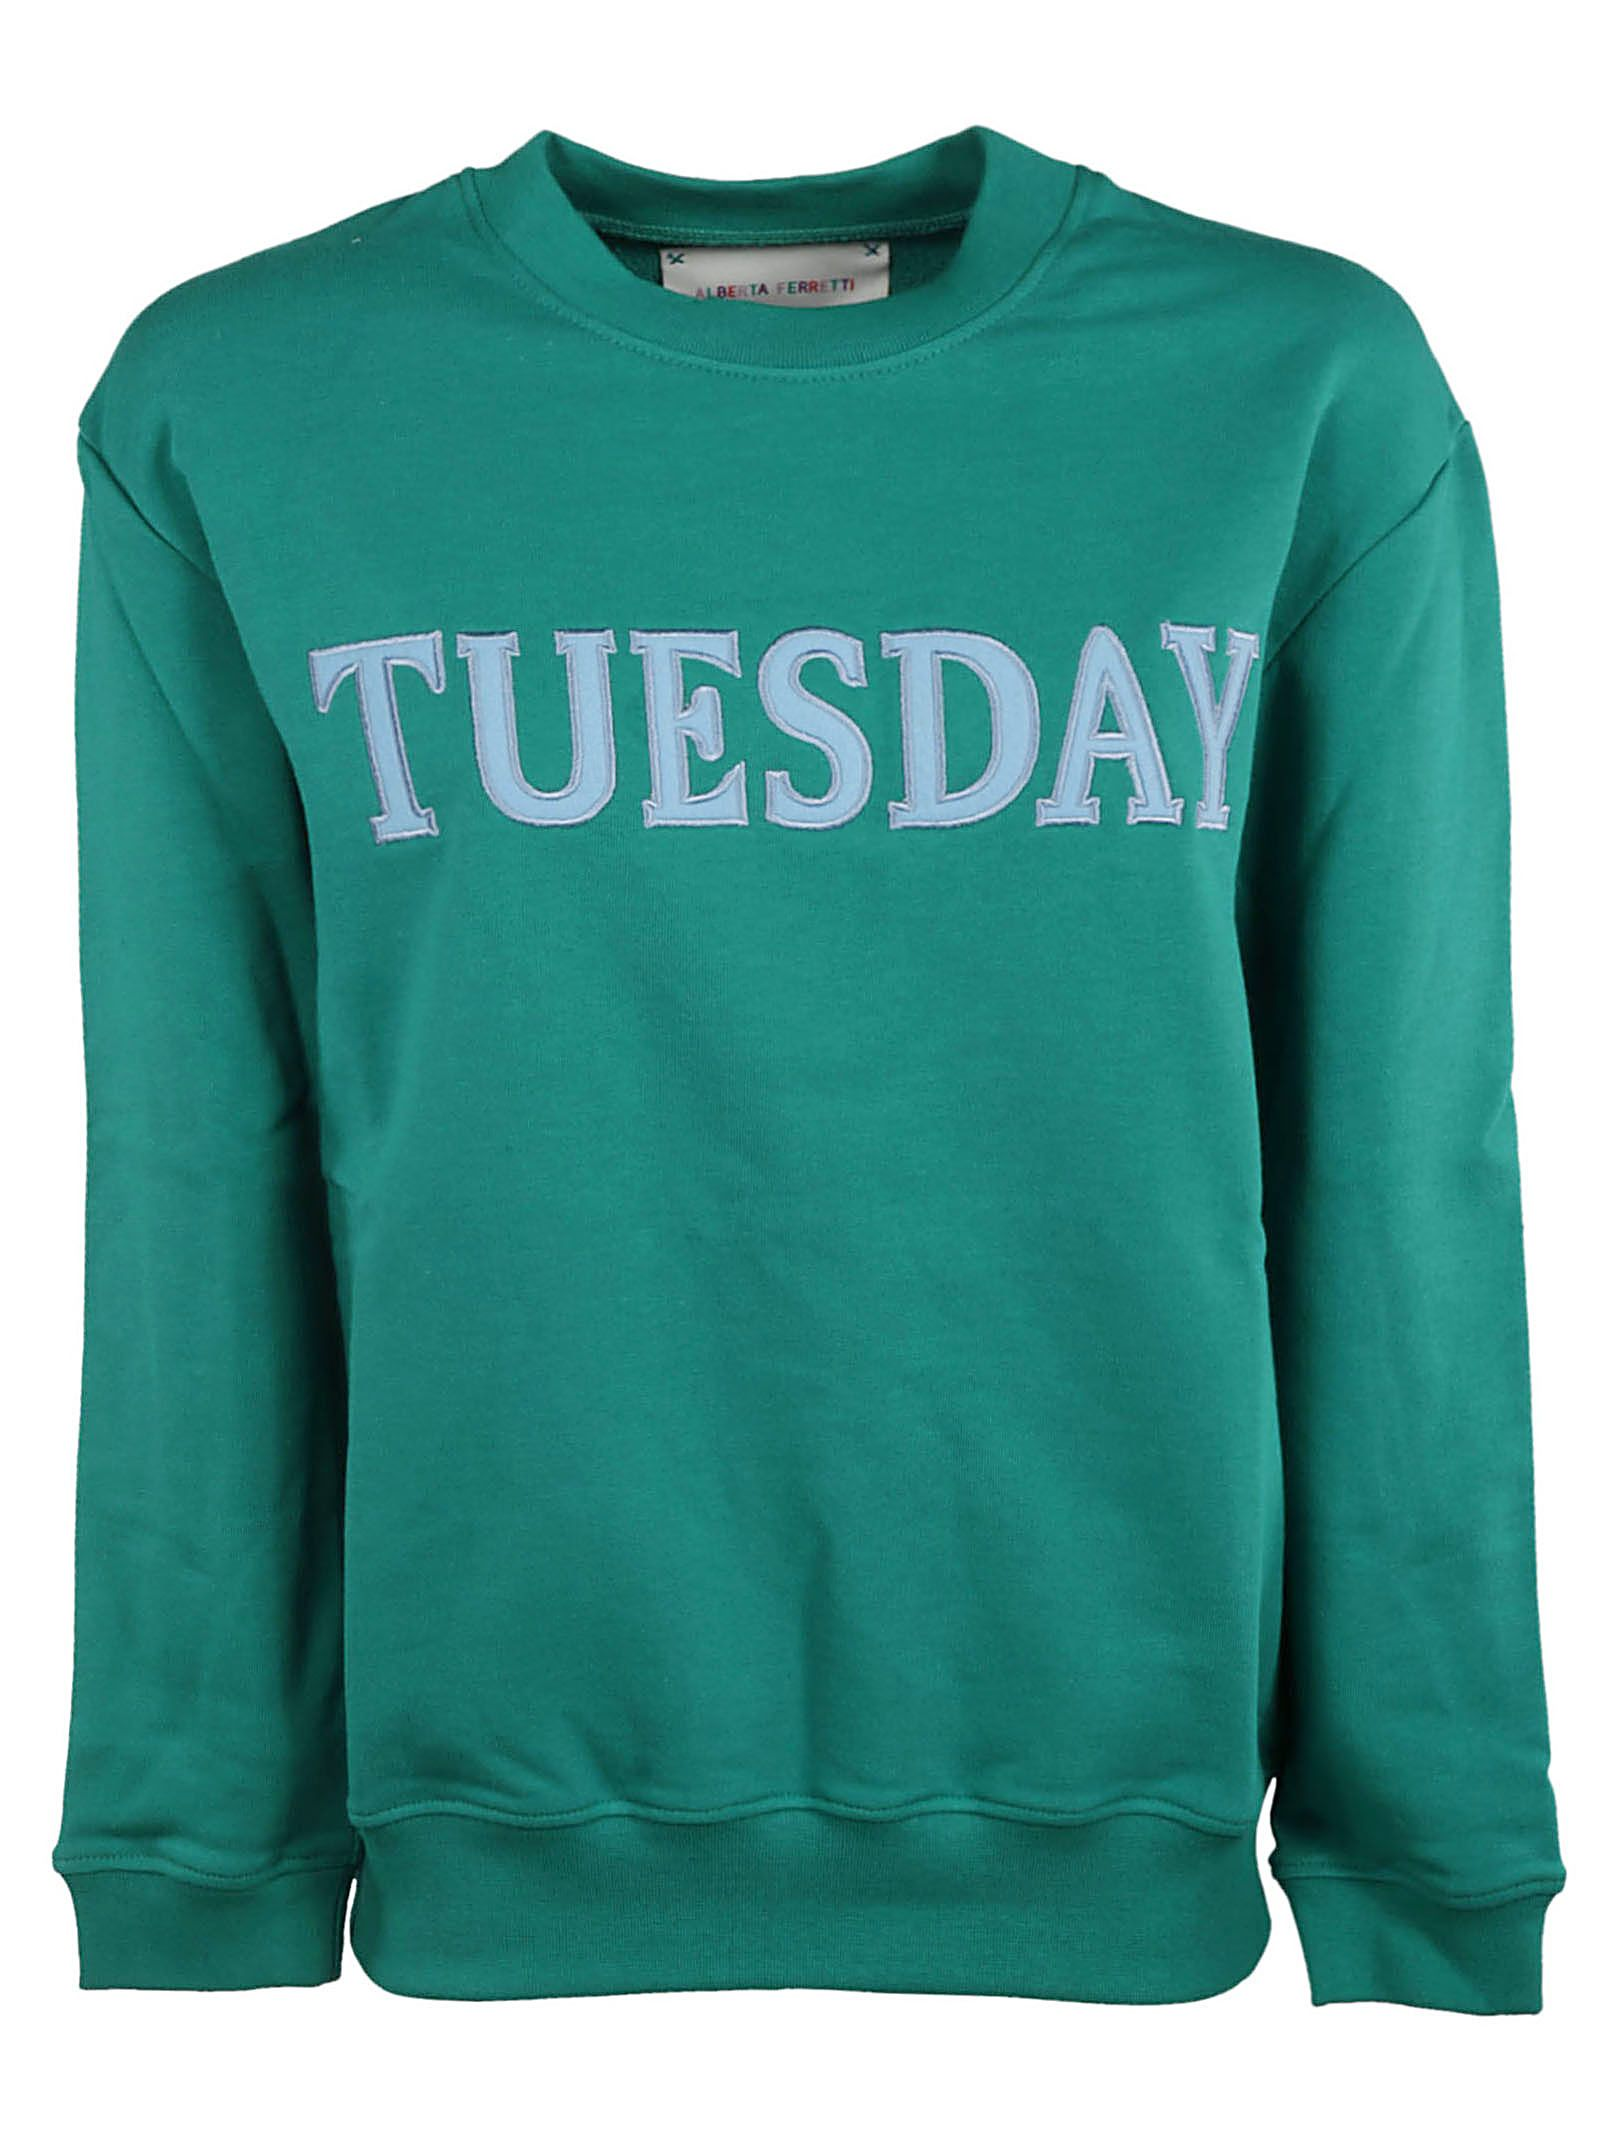 alberta ferretti -  Tuesday Sweatshirt